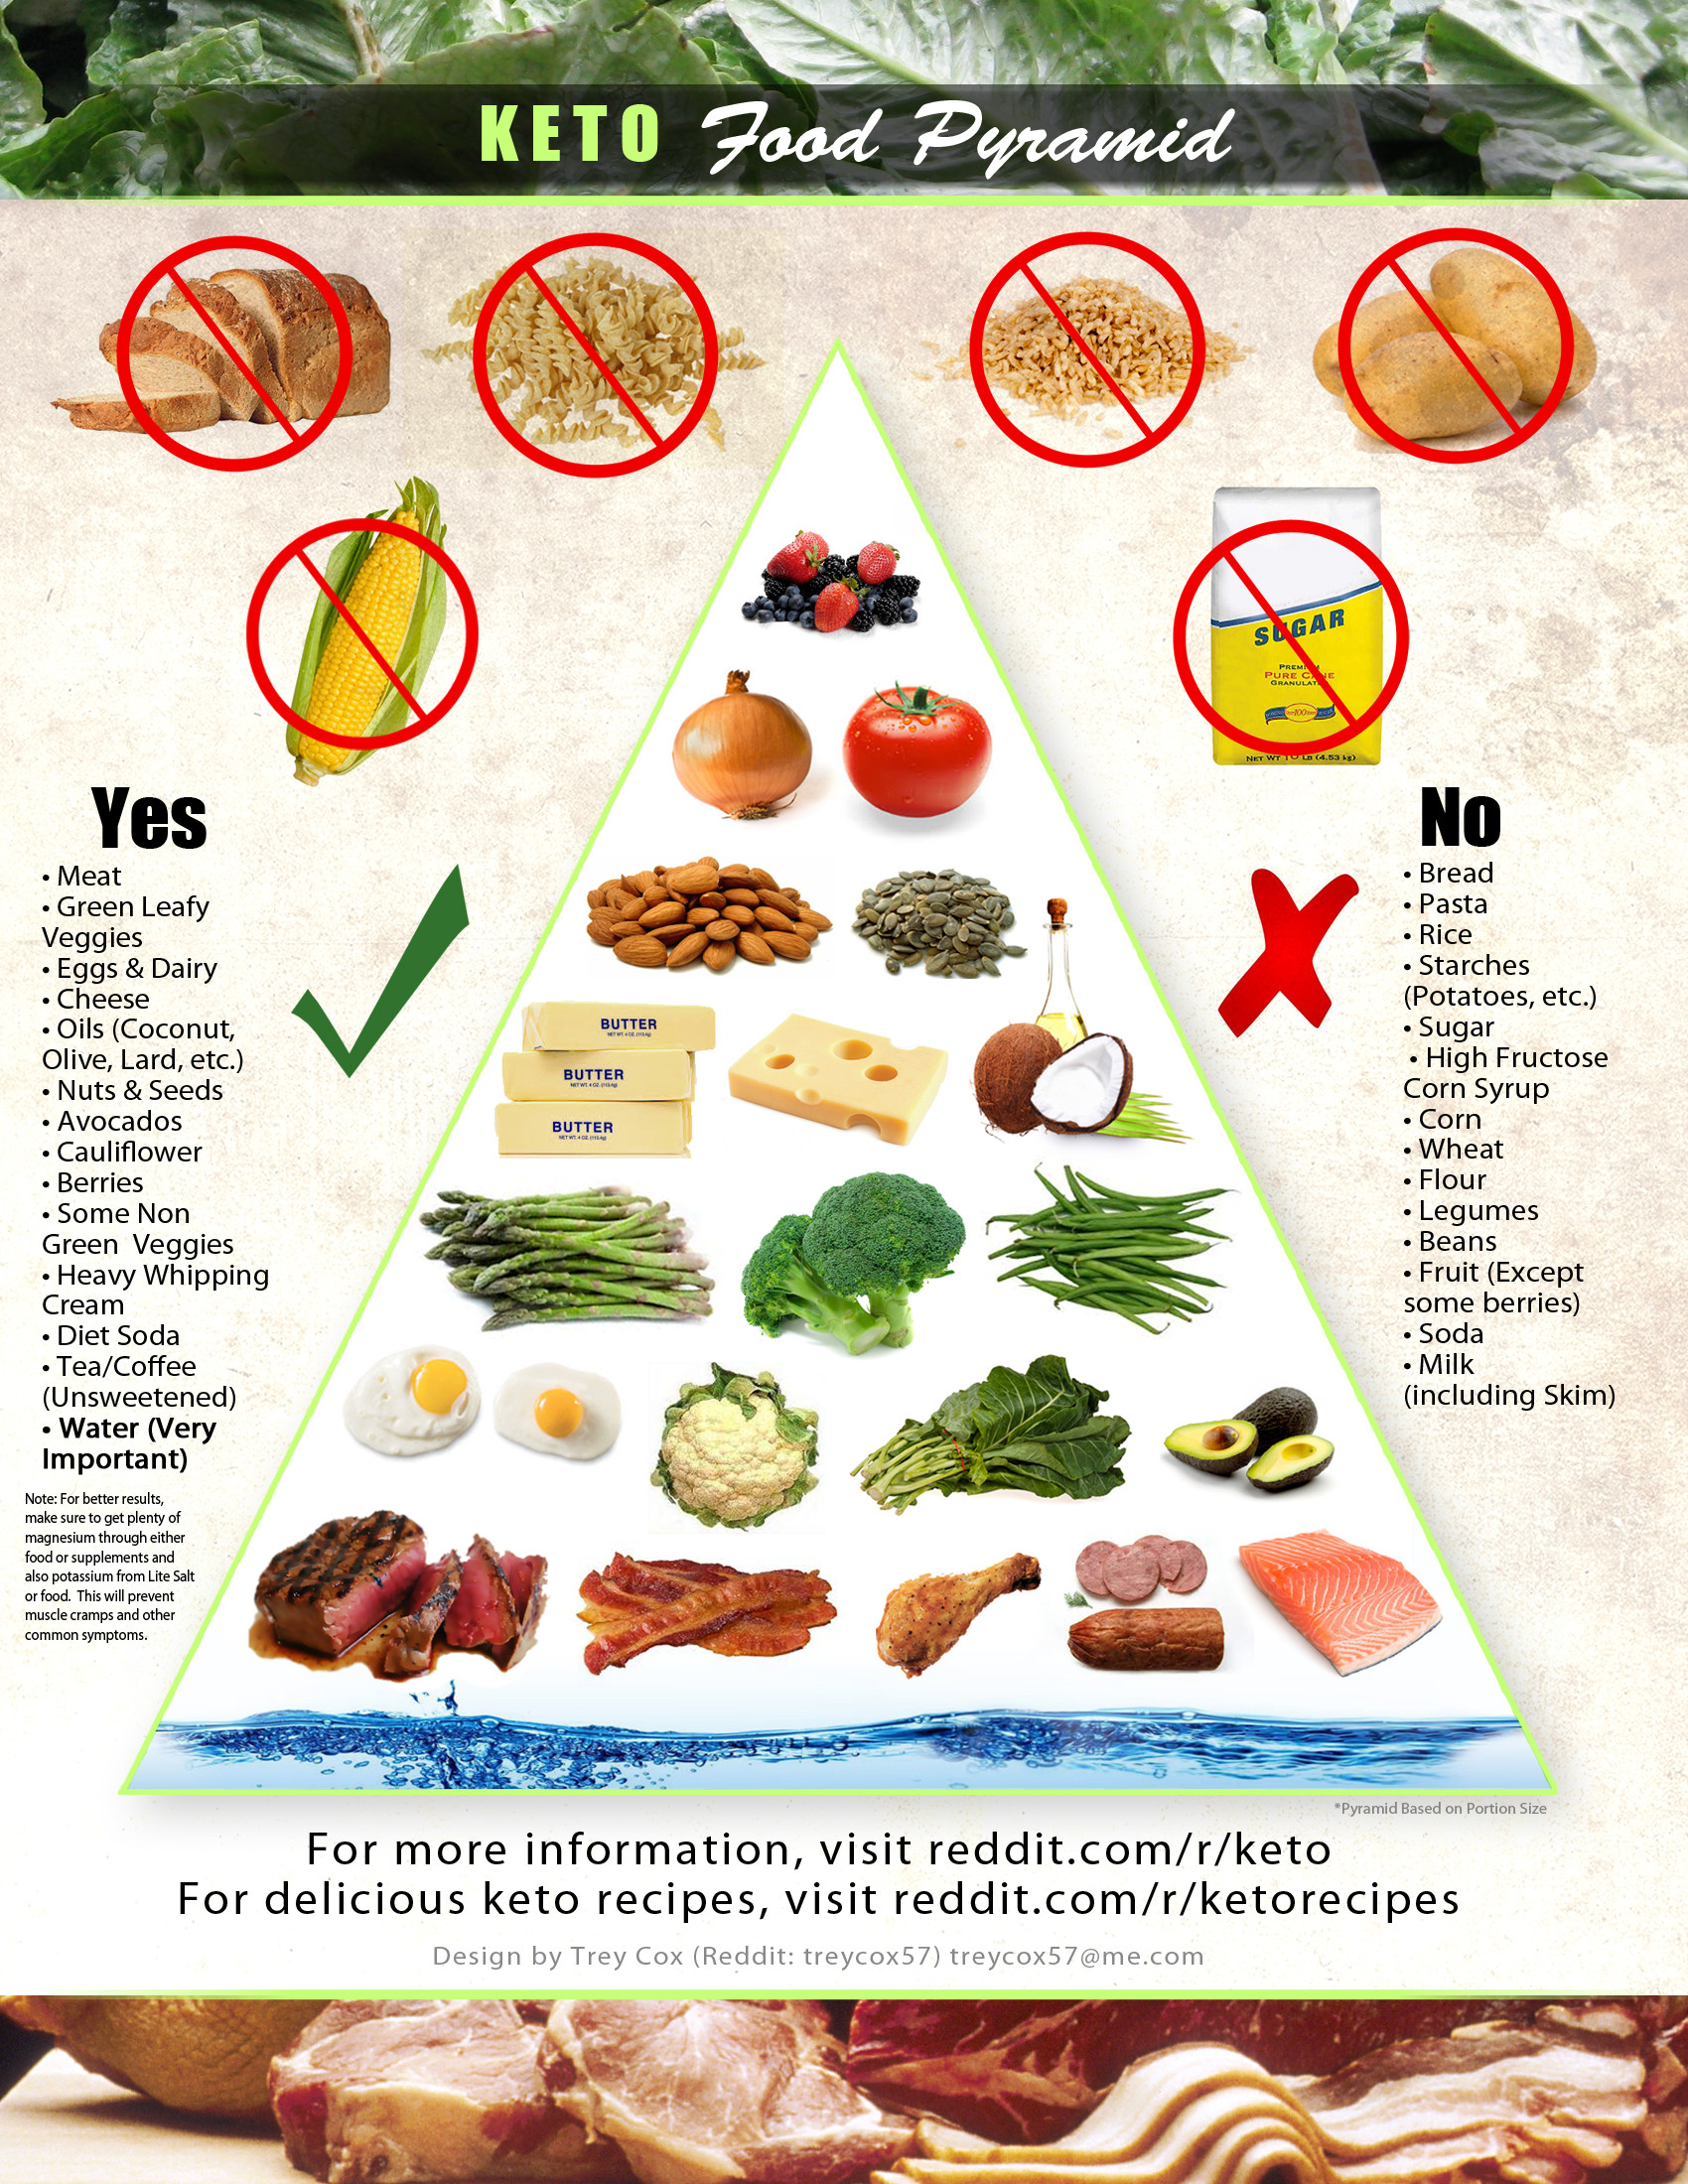 THIS IS A TERRIFIC FOOD GUIDE FROM REDDIT.COM - - SEE DESIGN NOTES FOR AUTHOR'S CREDIT